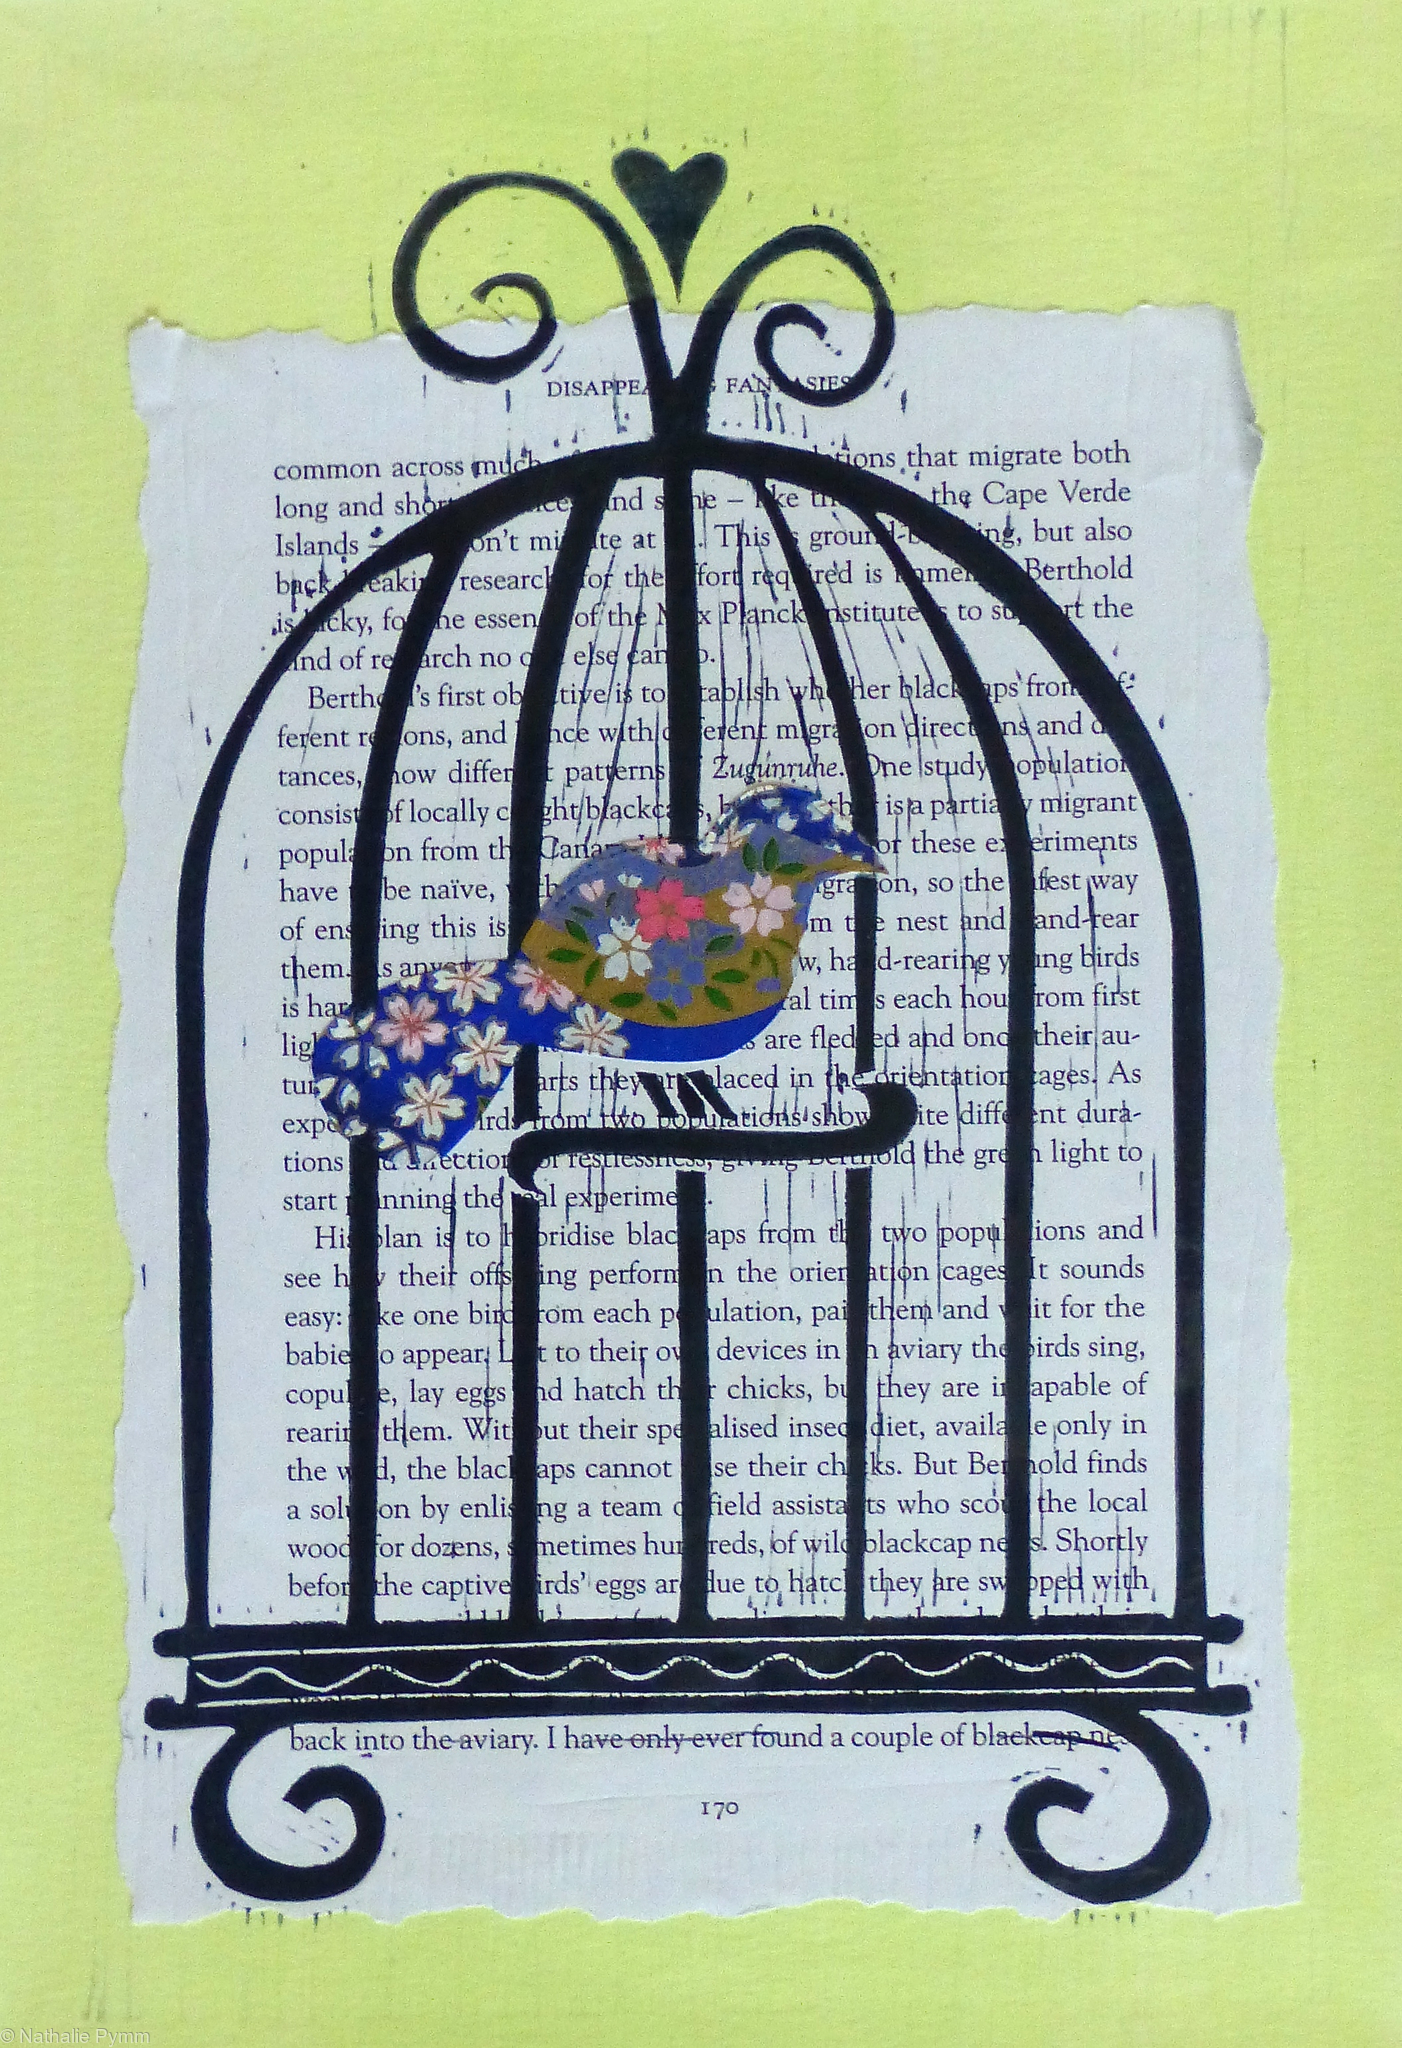 Blue bird in a cage